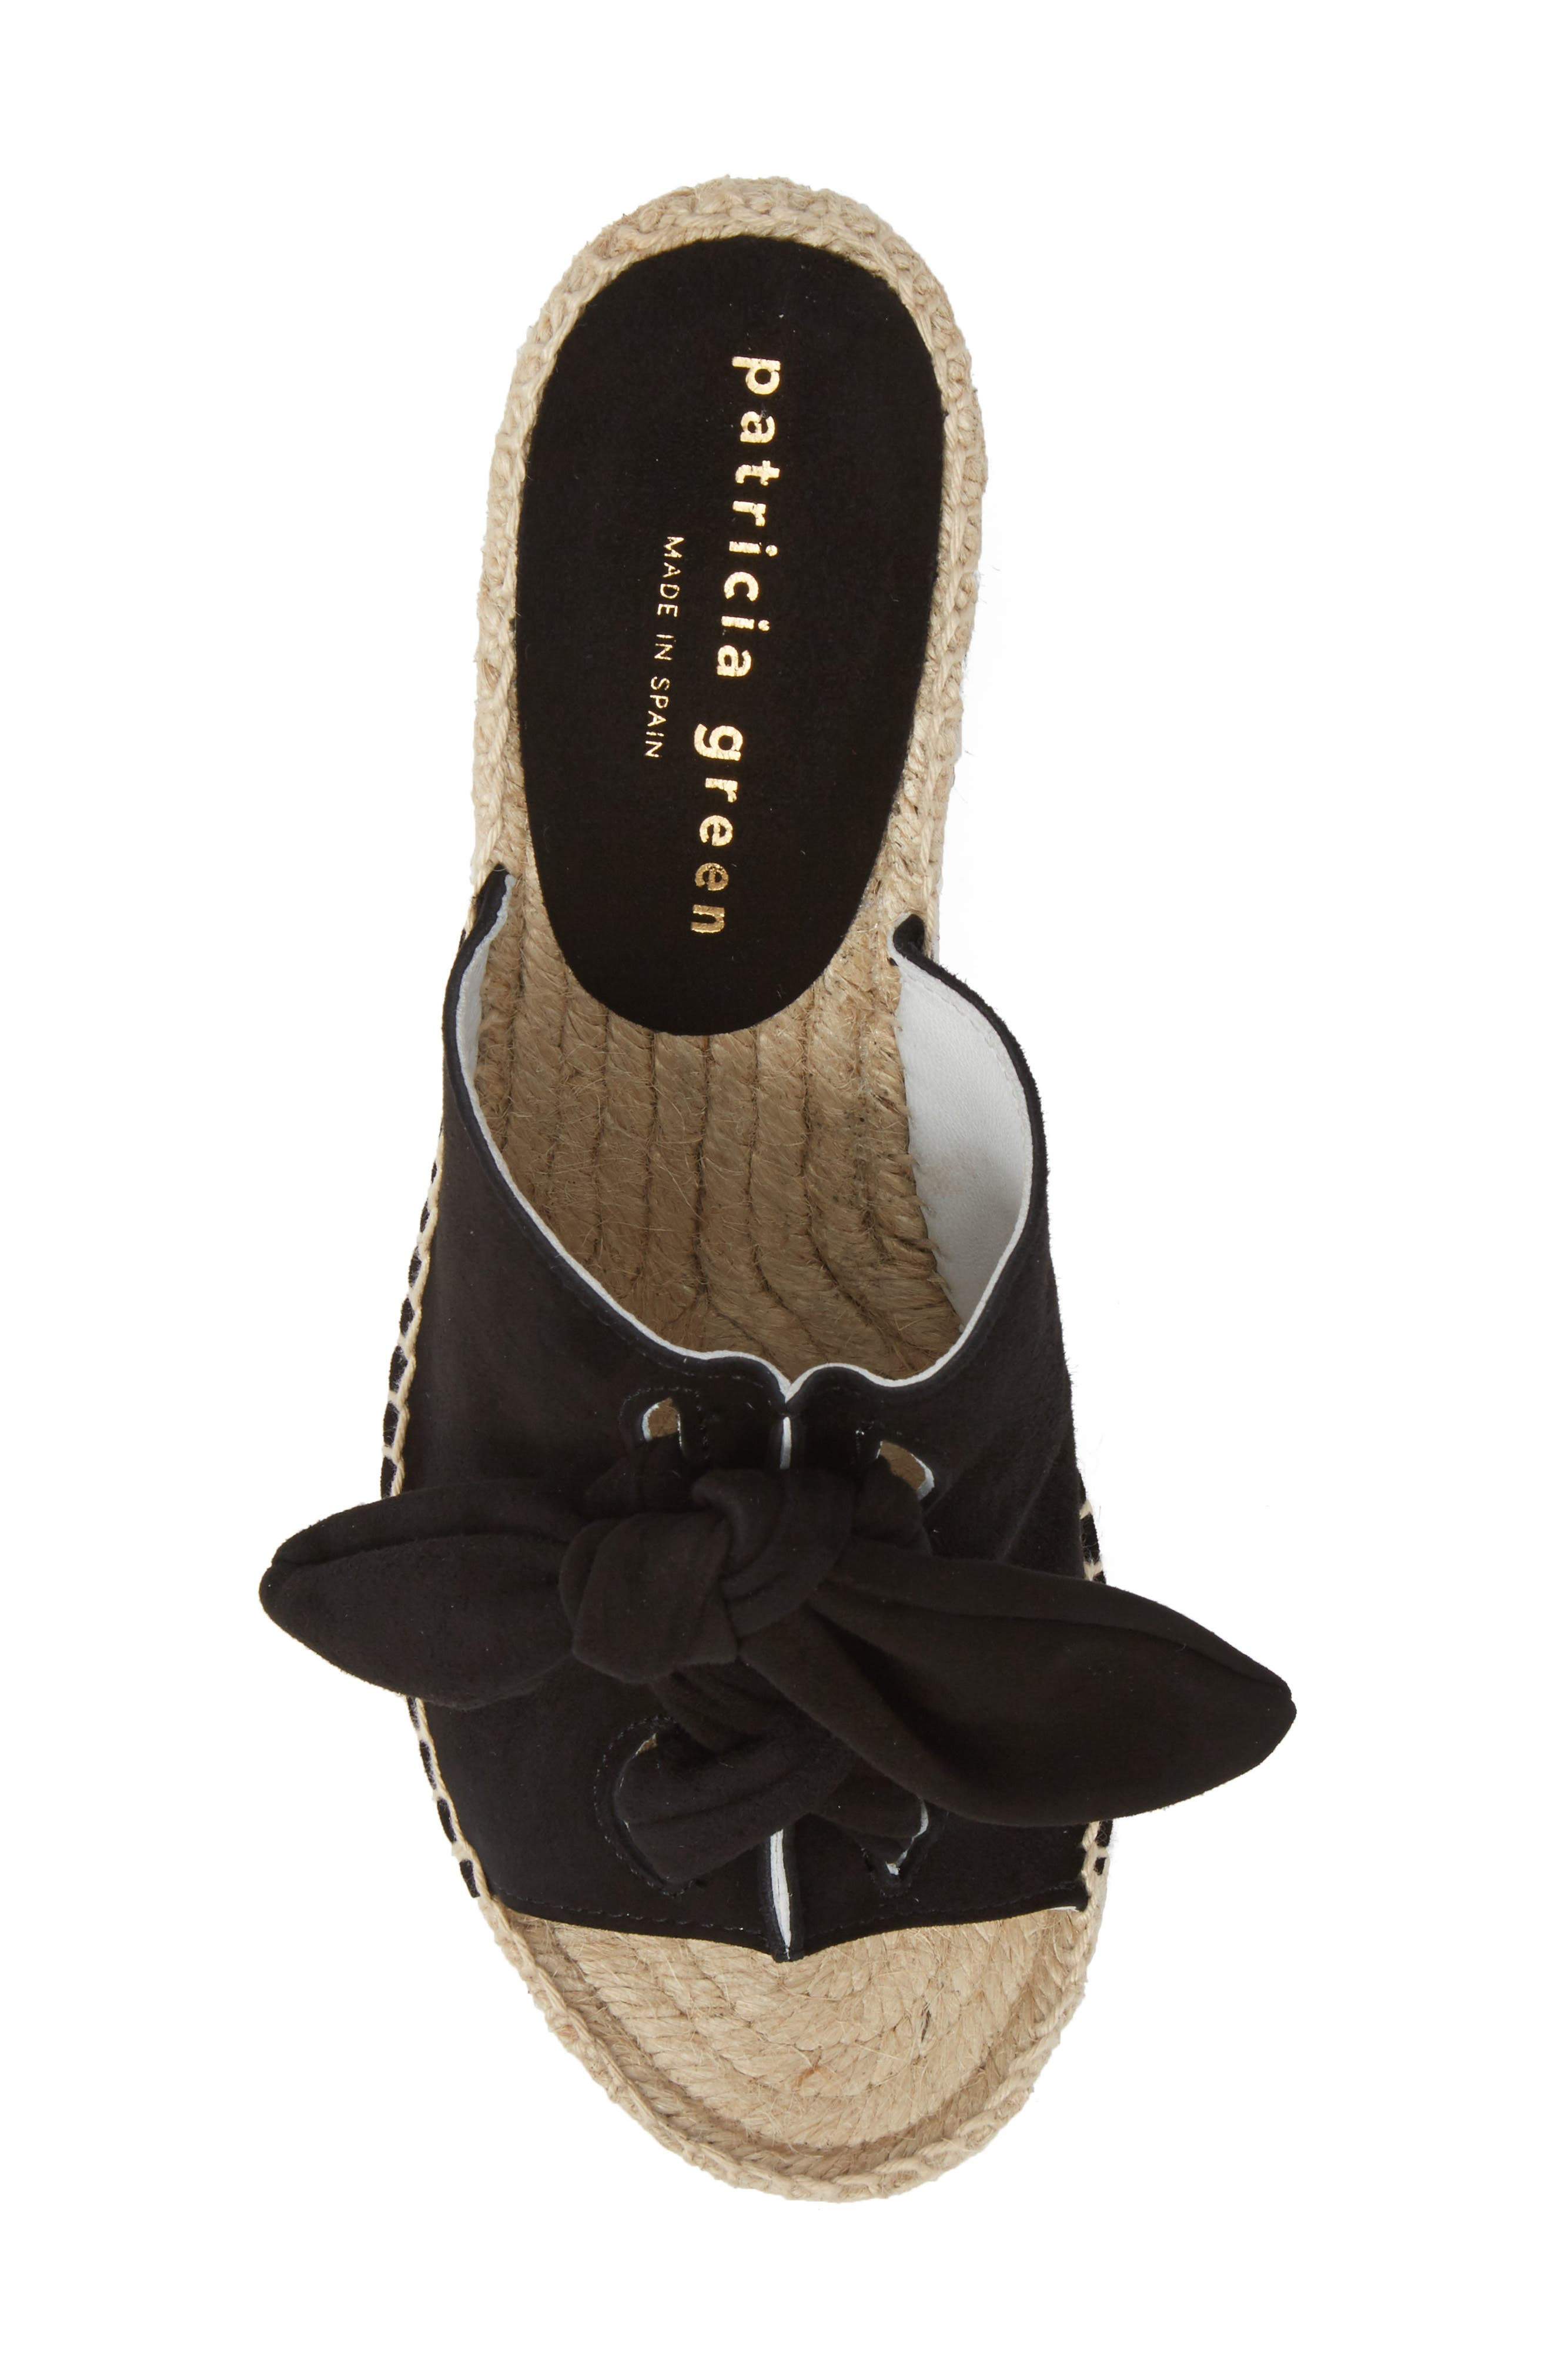 Flirt Espadrille Wedge Sandal,                             Alternate thumbnail 5, color,                             Black Suede